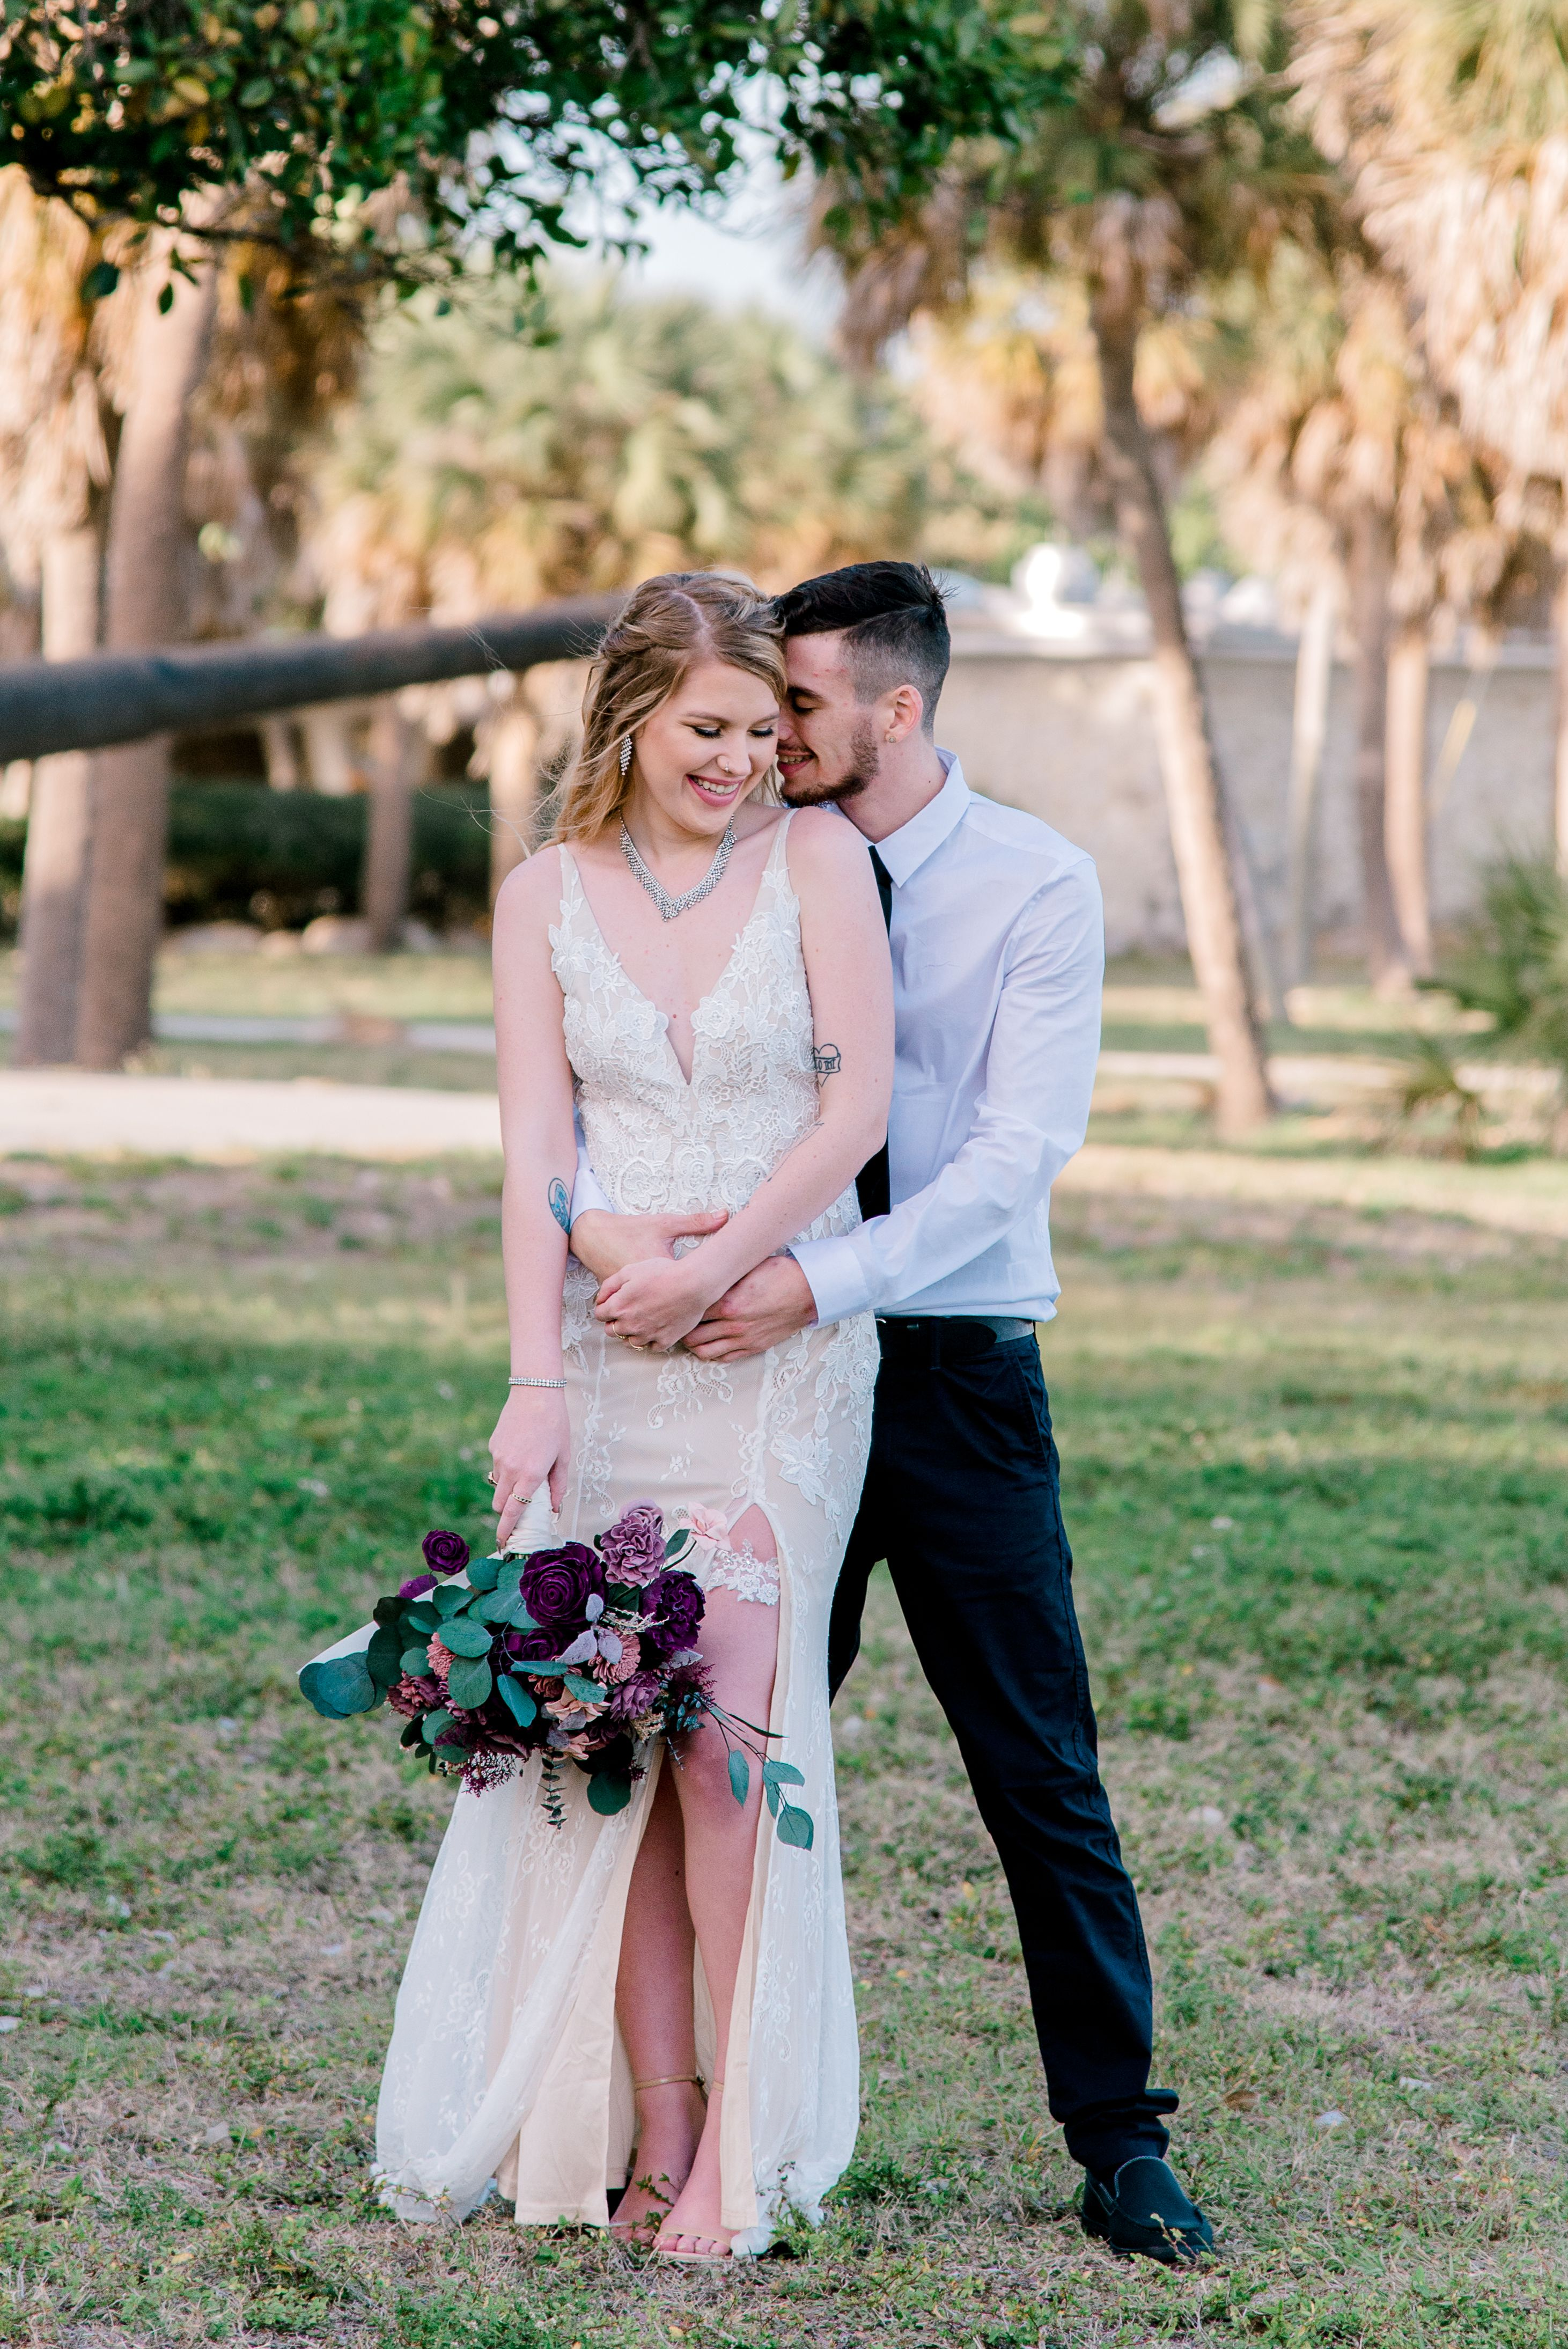 Sarasota Florida Wedding Photographer Nina Bashaw In 2020 Florida Wedding Photographer Bride And Groom Photos Wedding Photographers